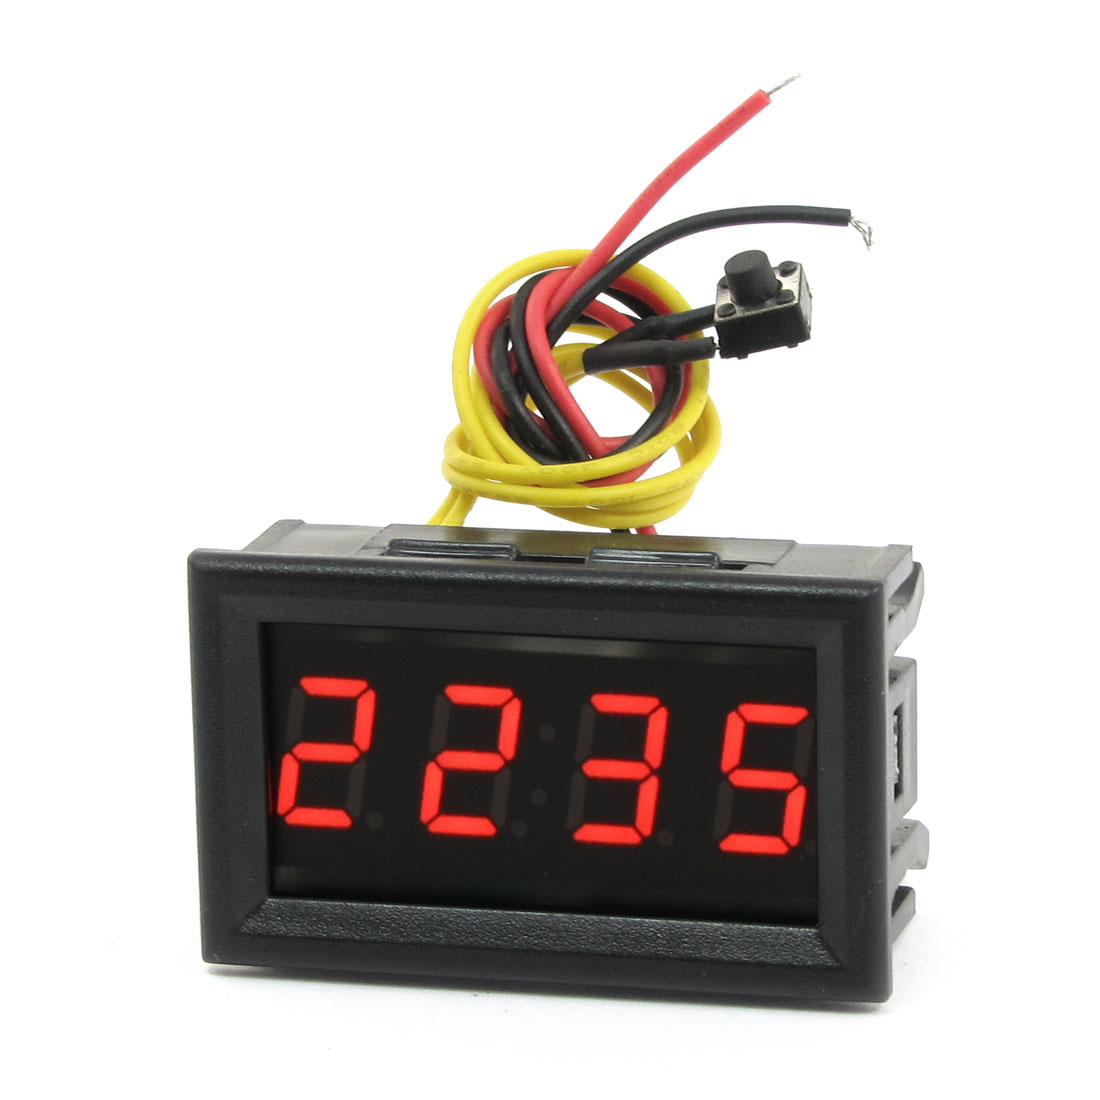 "YB27T 0.4"" Red LED 4-Digital Display Electronic Clock DC 4.5-30V"